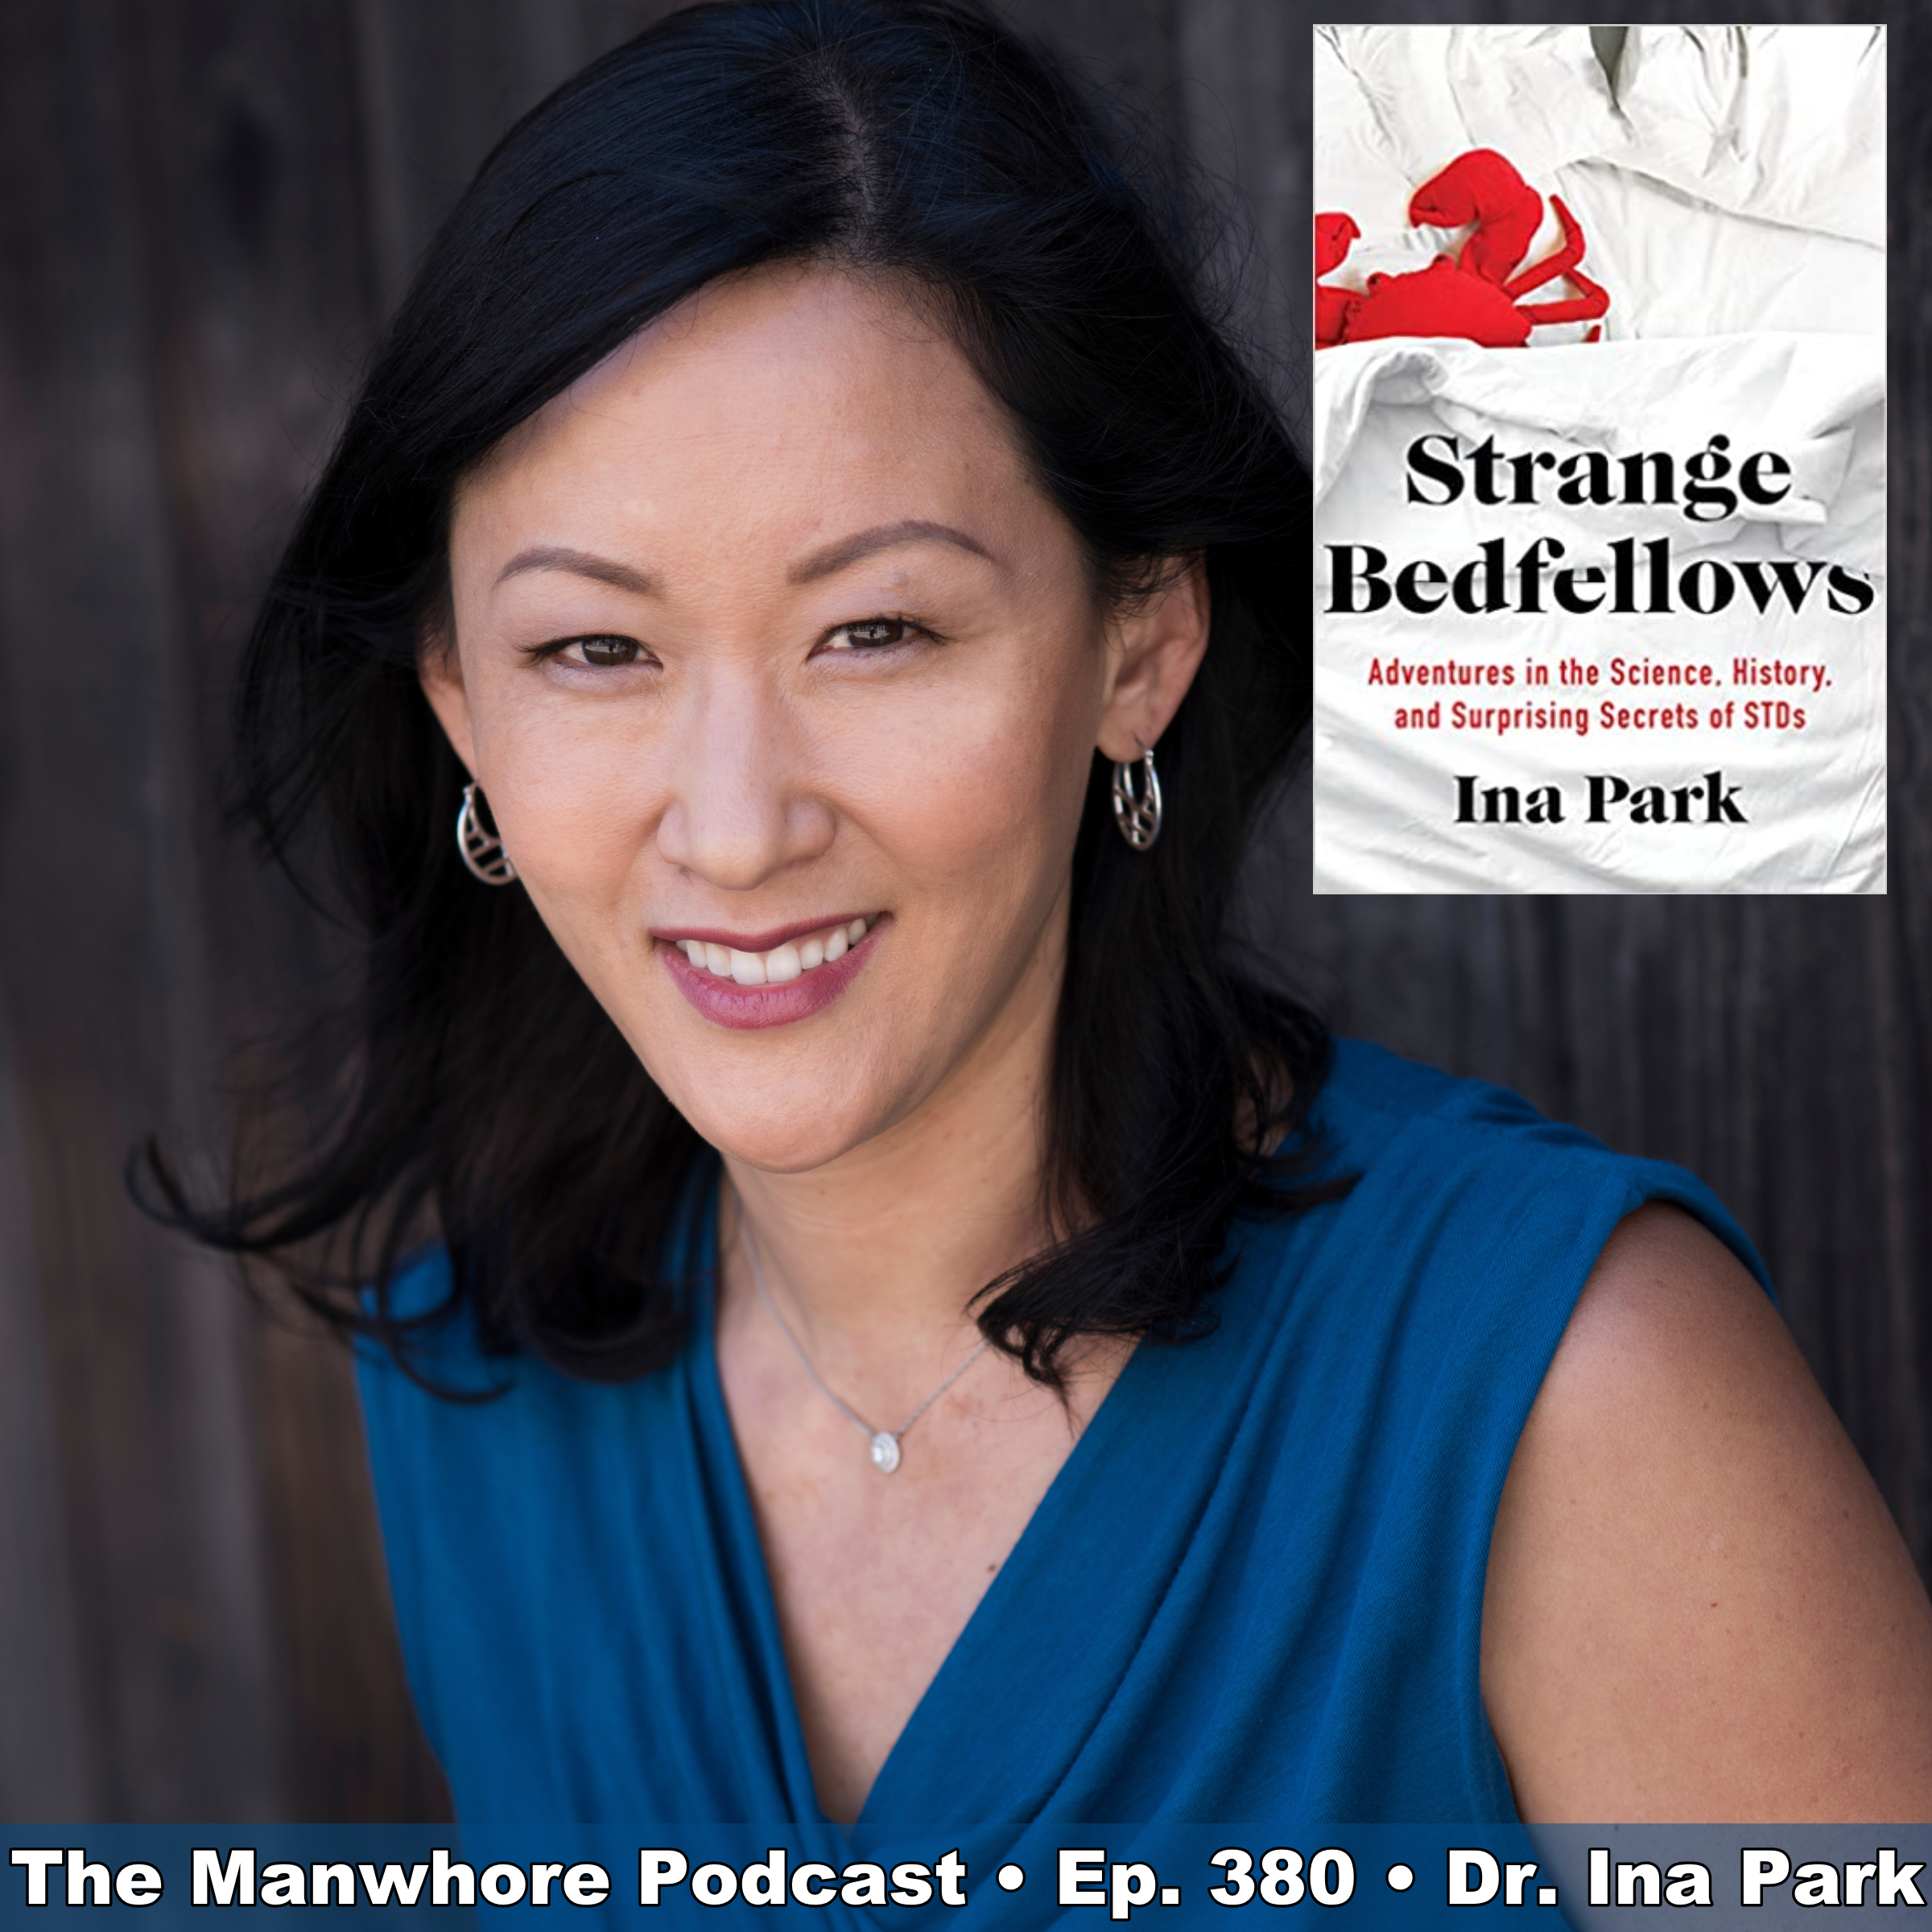 The Manwhore Podcast: A Sex-Positive Quest - Ep. 380: This Is The STDs Episode with Dr. Ina Park